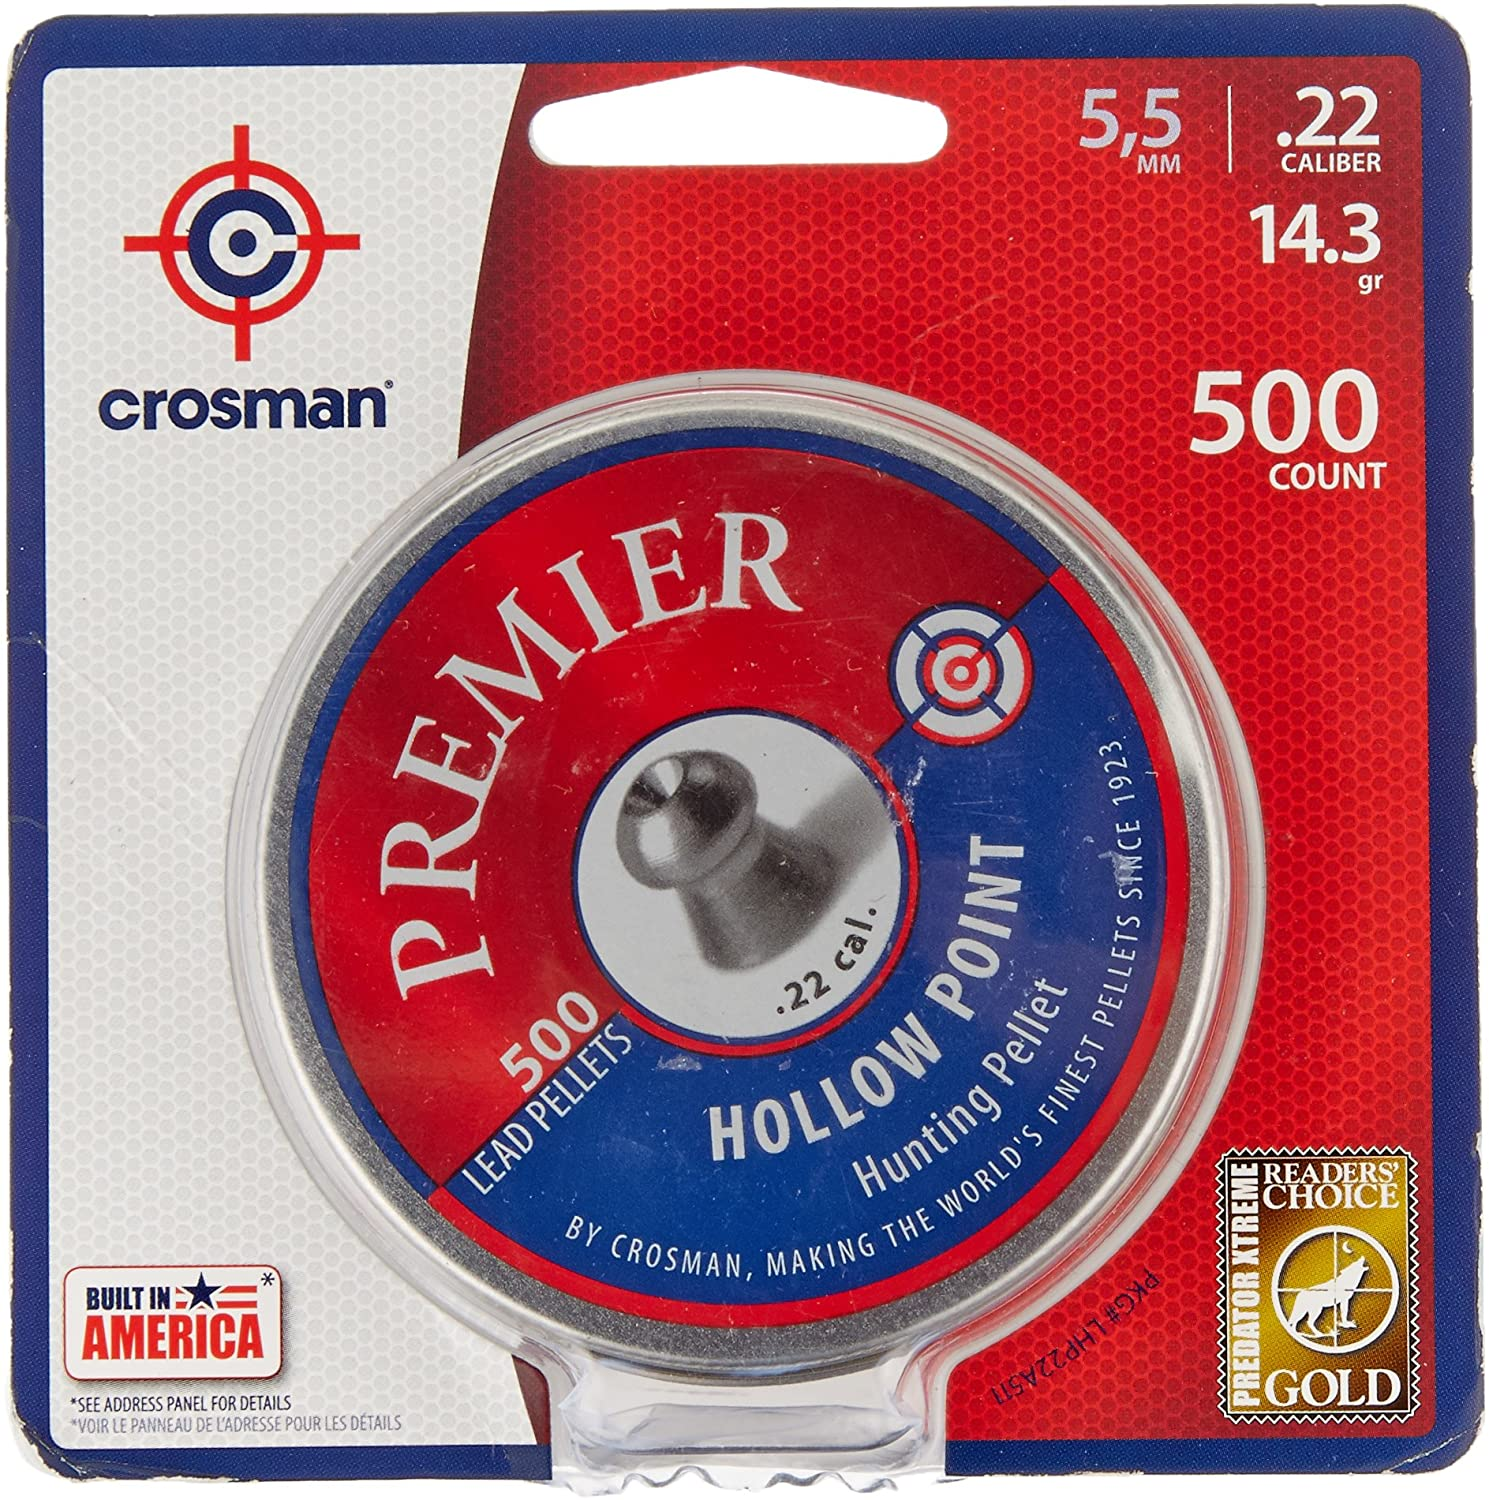 Crosman Premier Hollow Point Pellet Best .22 Caliber Pellet for Hunting